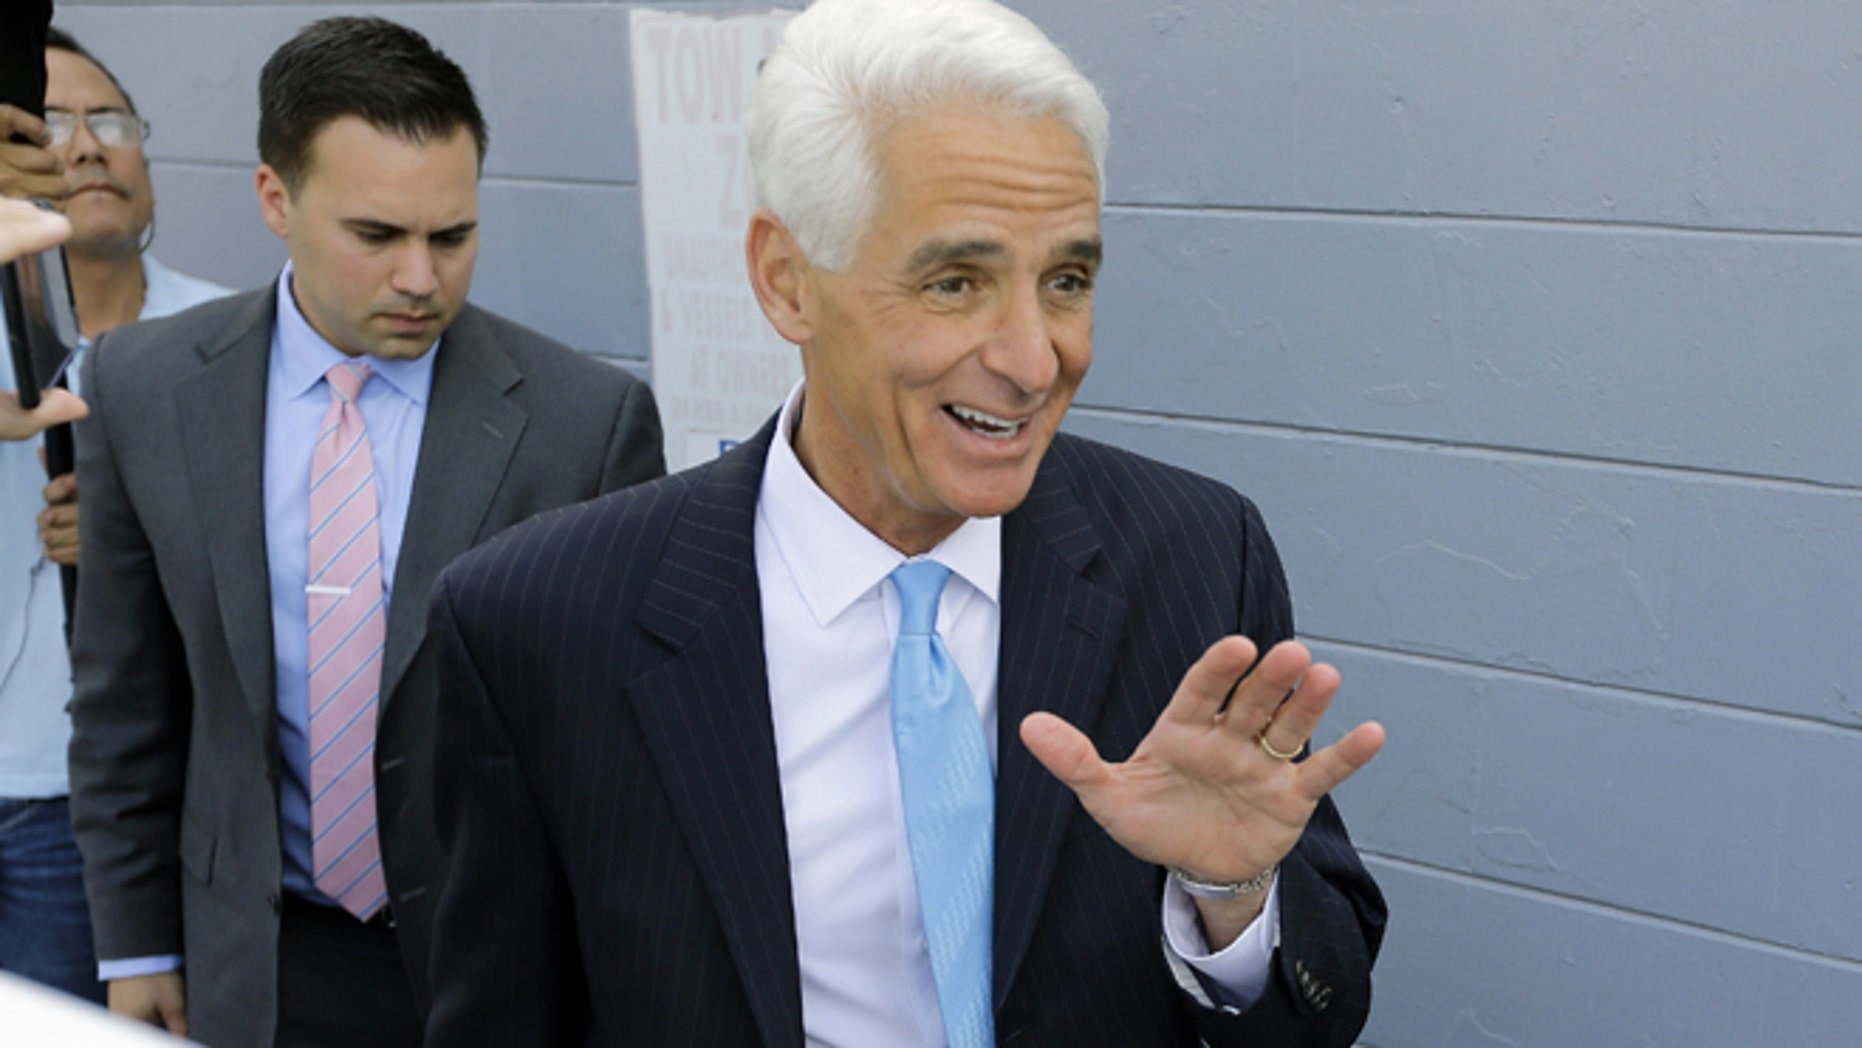 Florida Democratic gubernatorial candidate Charlie Crist  waves as he arrives to meet supporters at a phone bank during a campaign stop Tuesday, Nov. 4, 2014 in Tampa, Fla. Crist is running against Gov. Rick Scott. (AP Photo/Chris O'Meara)